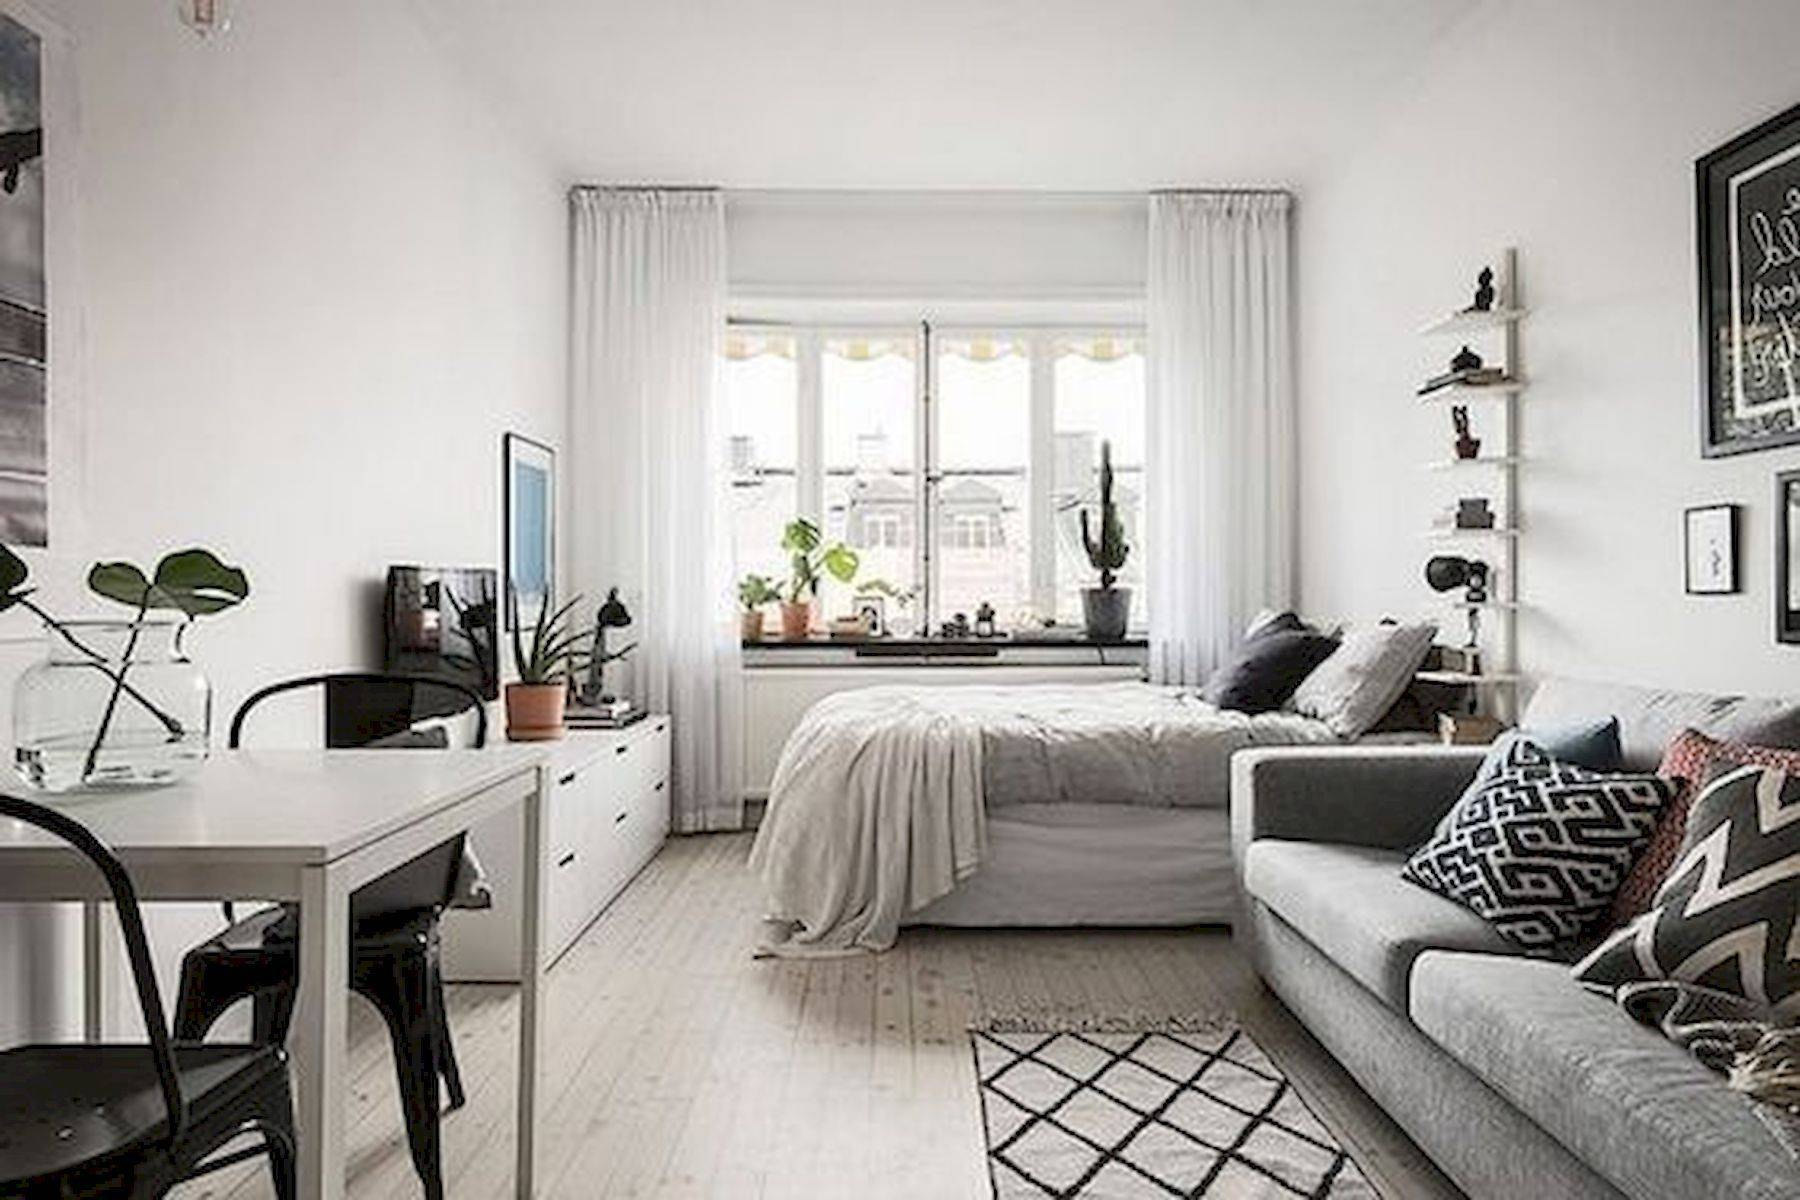 Studio Apartment Designs Awesome Got A Super Small Studio Apartment Just because Your Square